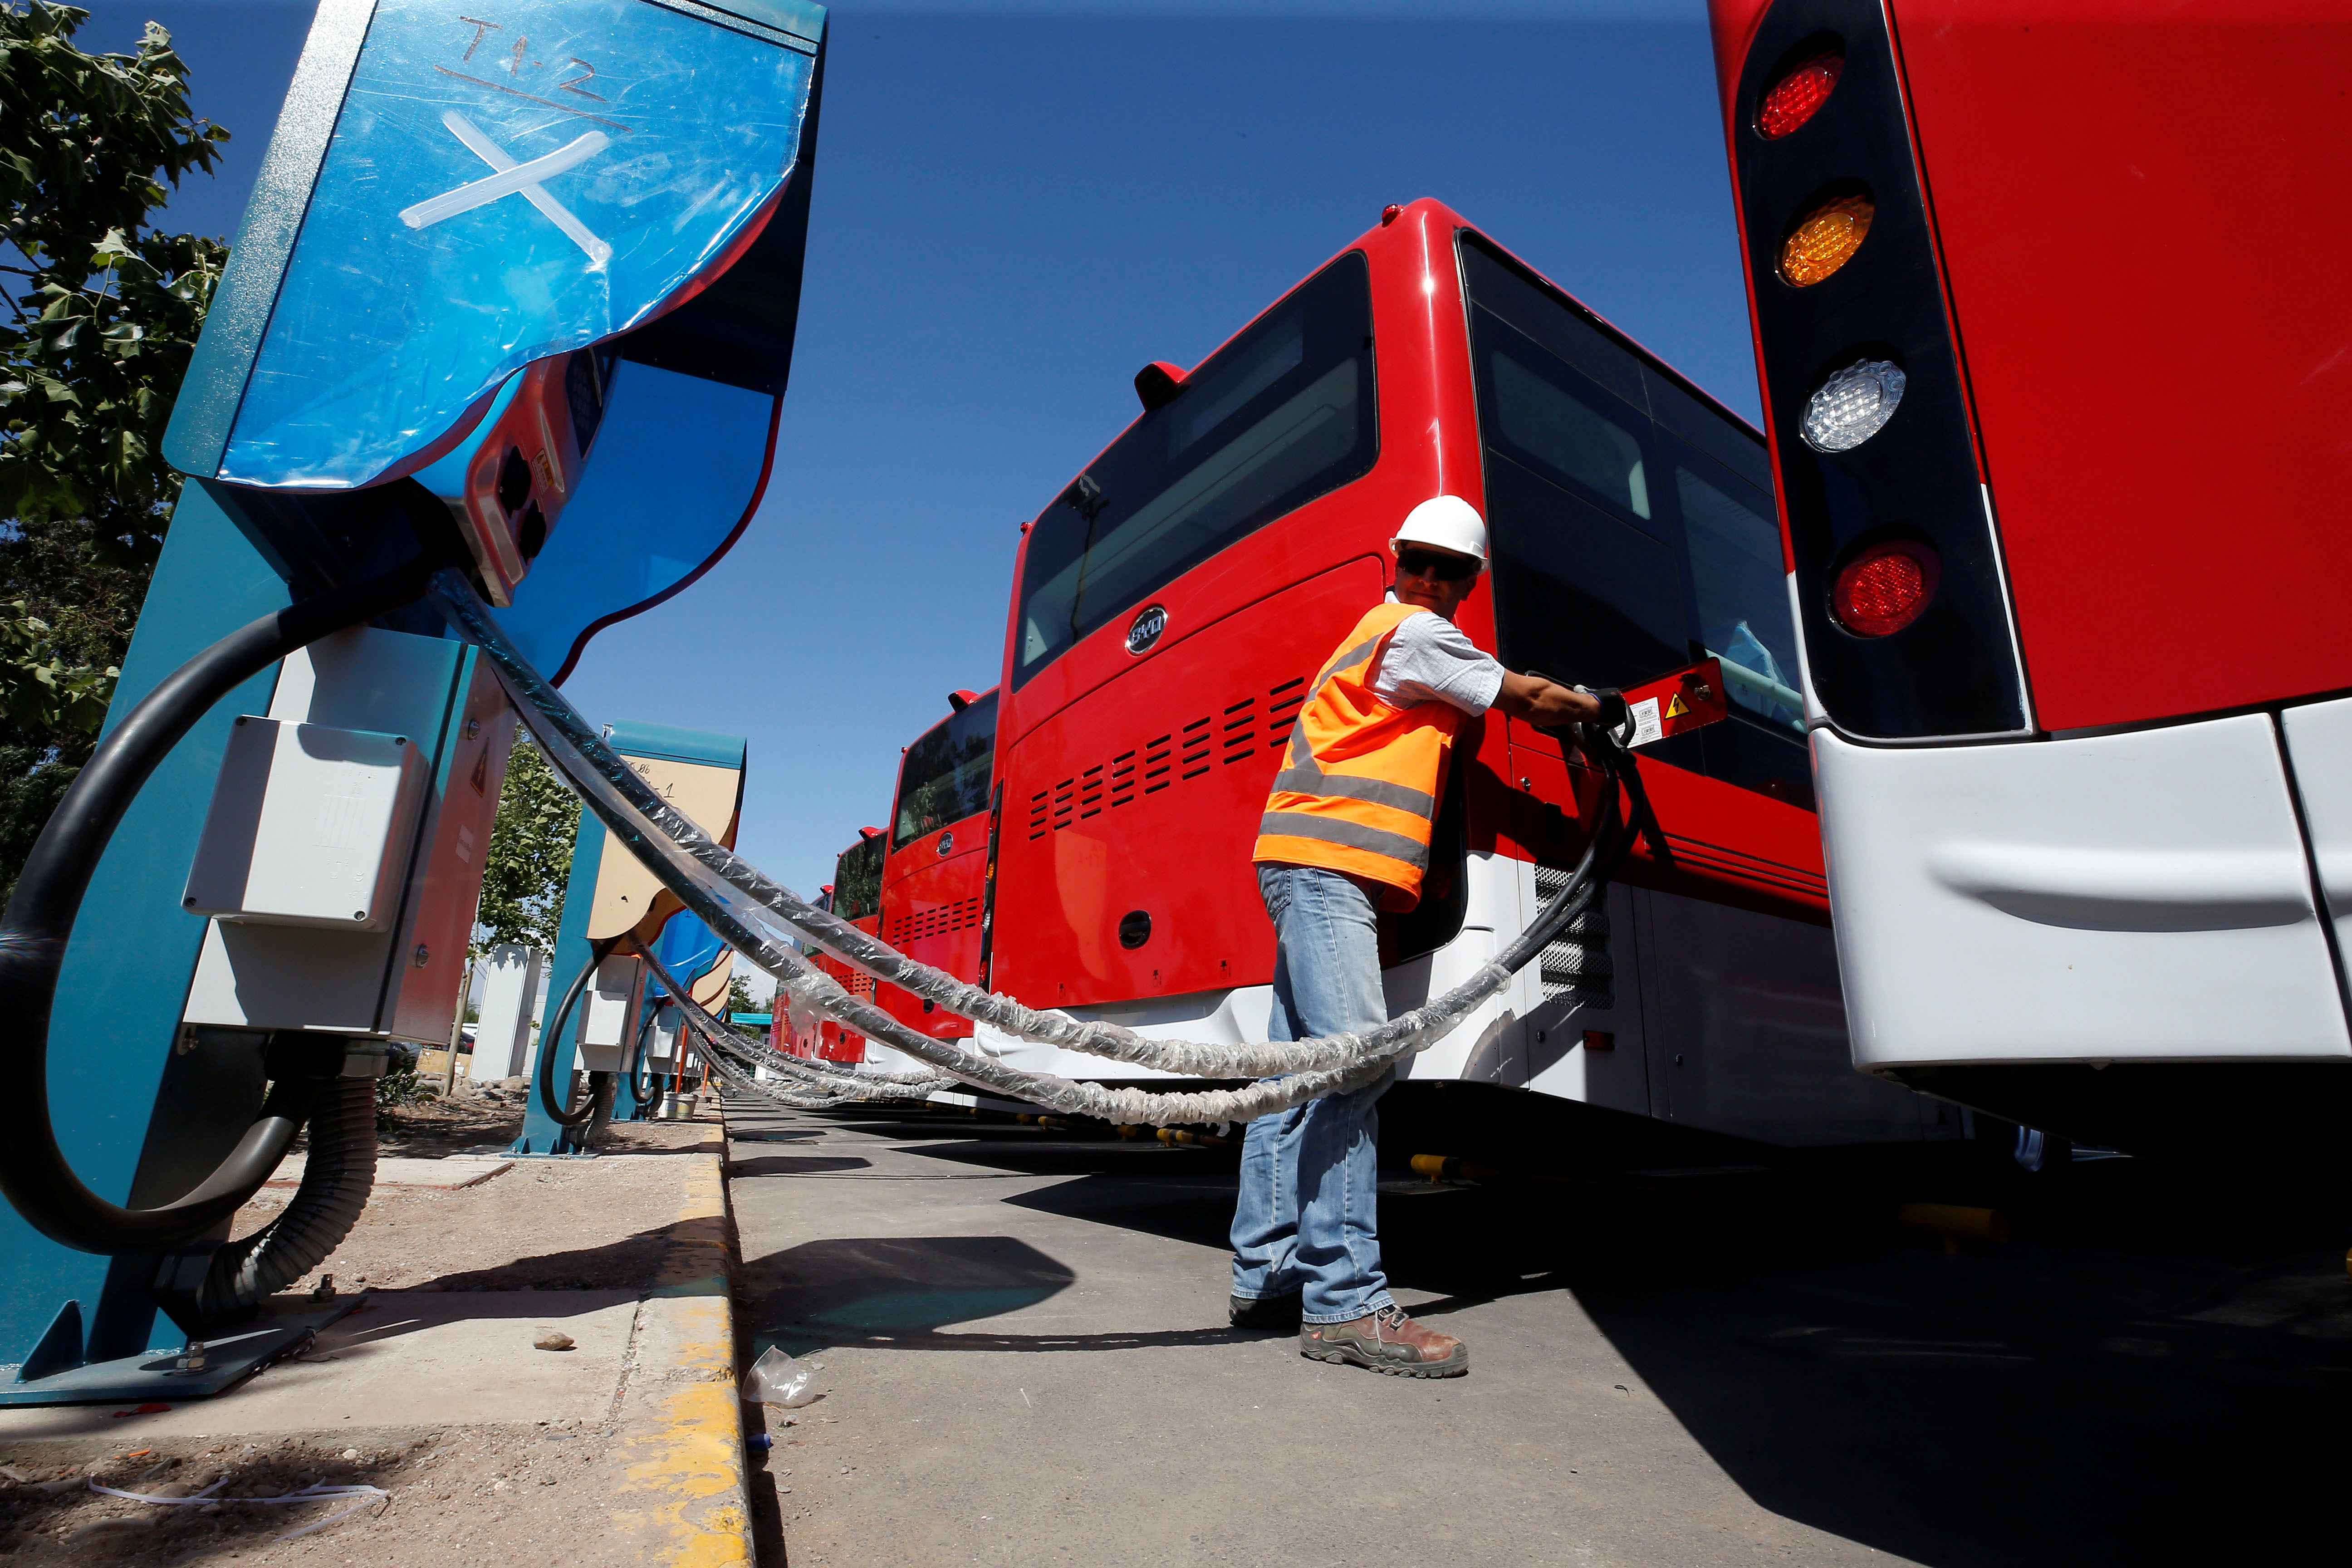 A man plugs an electric bus, manufactured by China's BYD, as part of the new fleet of electric buses for public transport in Santiago, Chile  November 28, 2018. Picture taken November 28, 2018